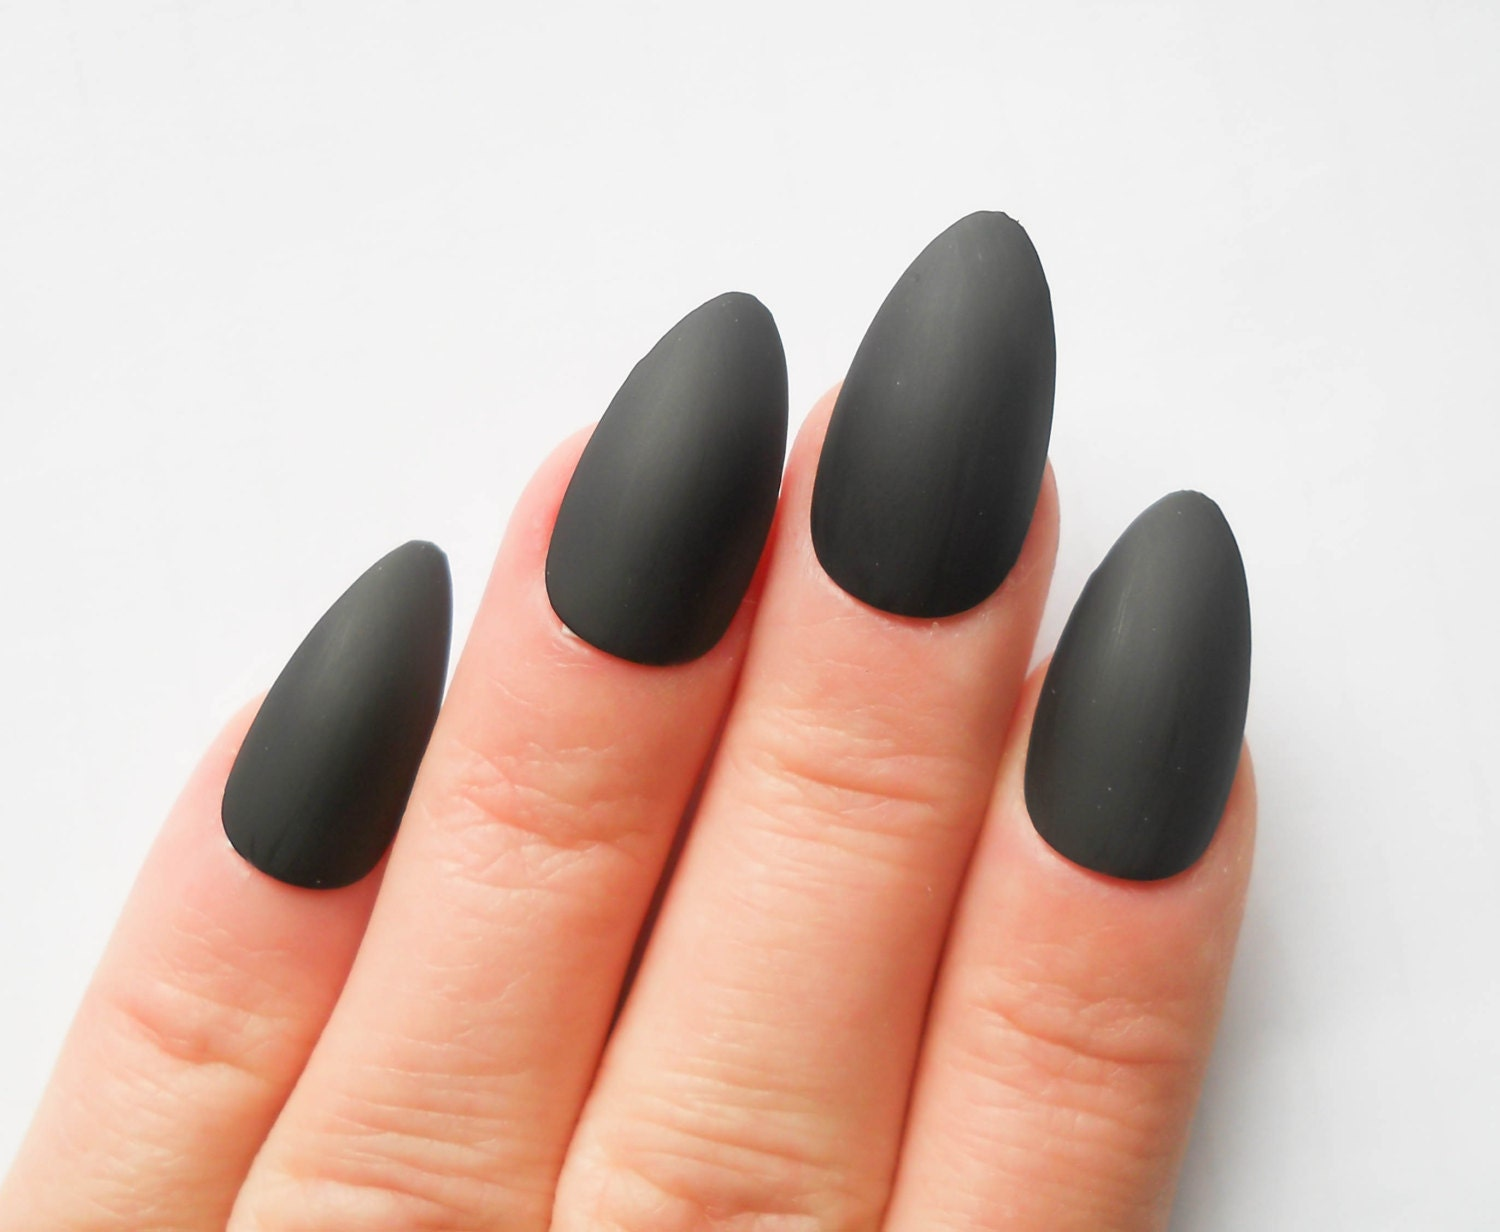 Matte Black Nails / Fake Nails / Stiletto Nails / Press on